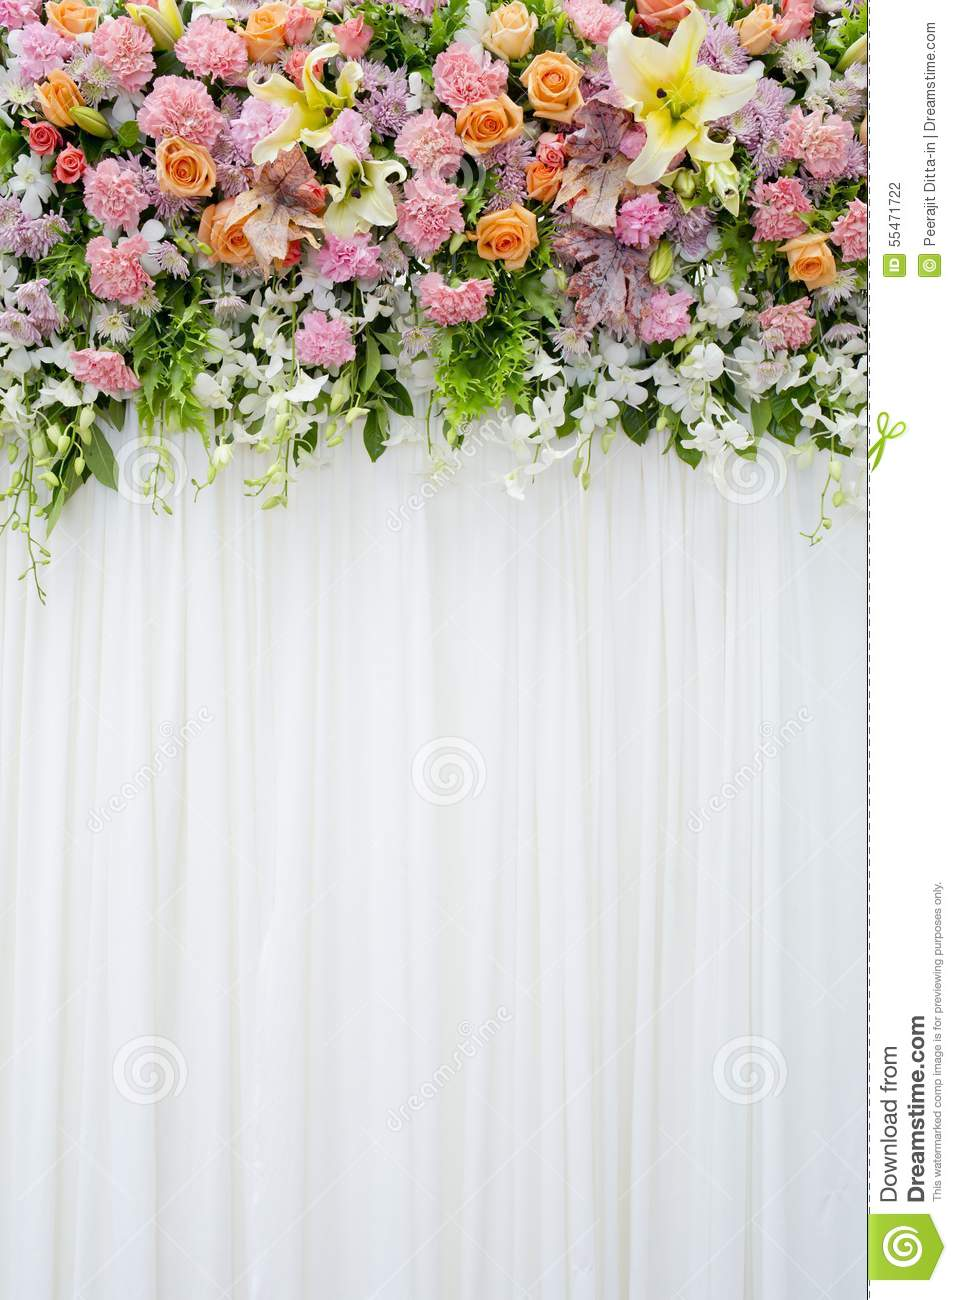 Floral Backdrop In Cozy Room At The Wedding Stock Photo